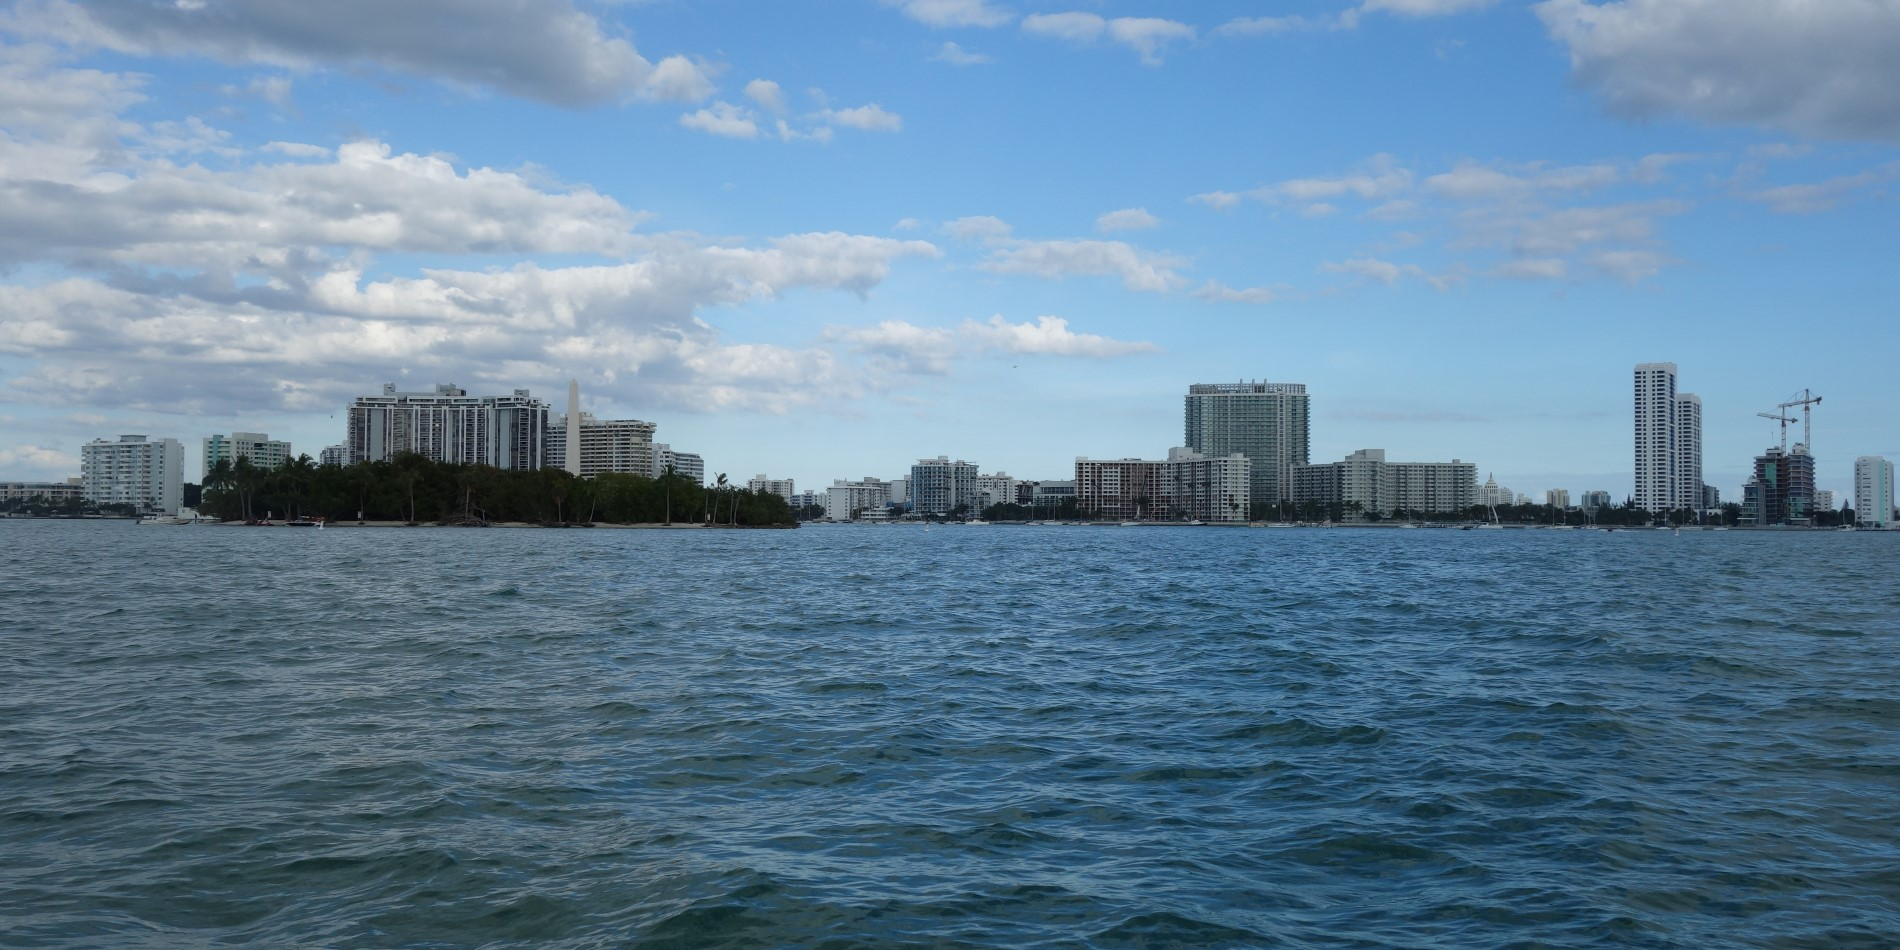 View of Miami from the sea.